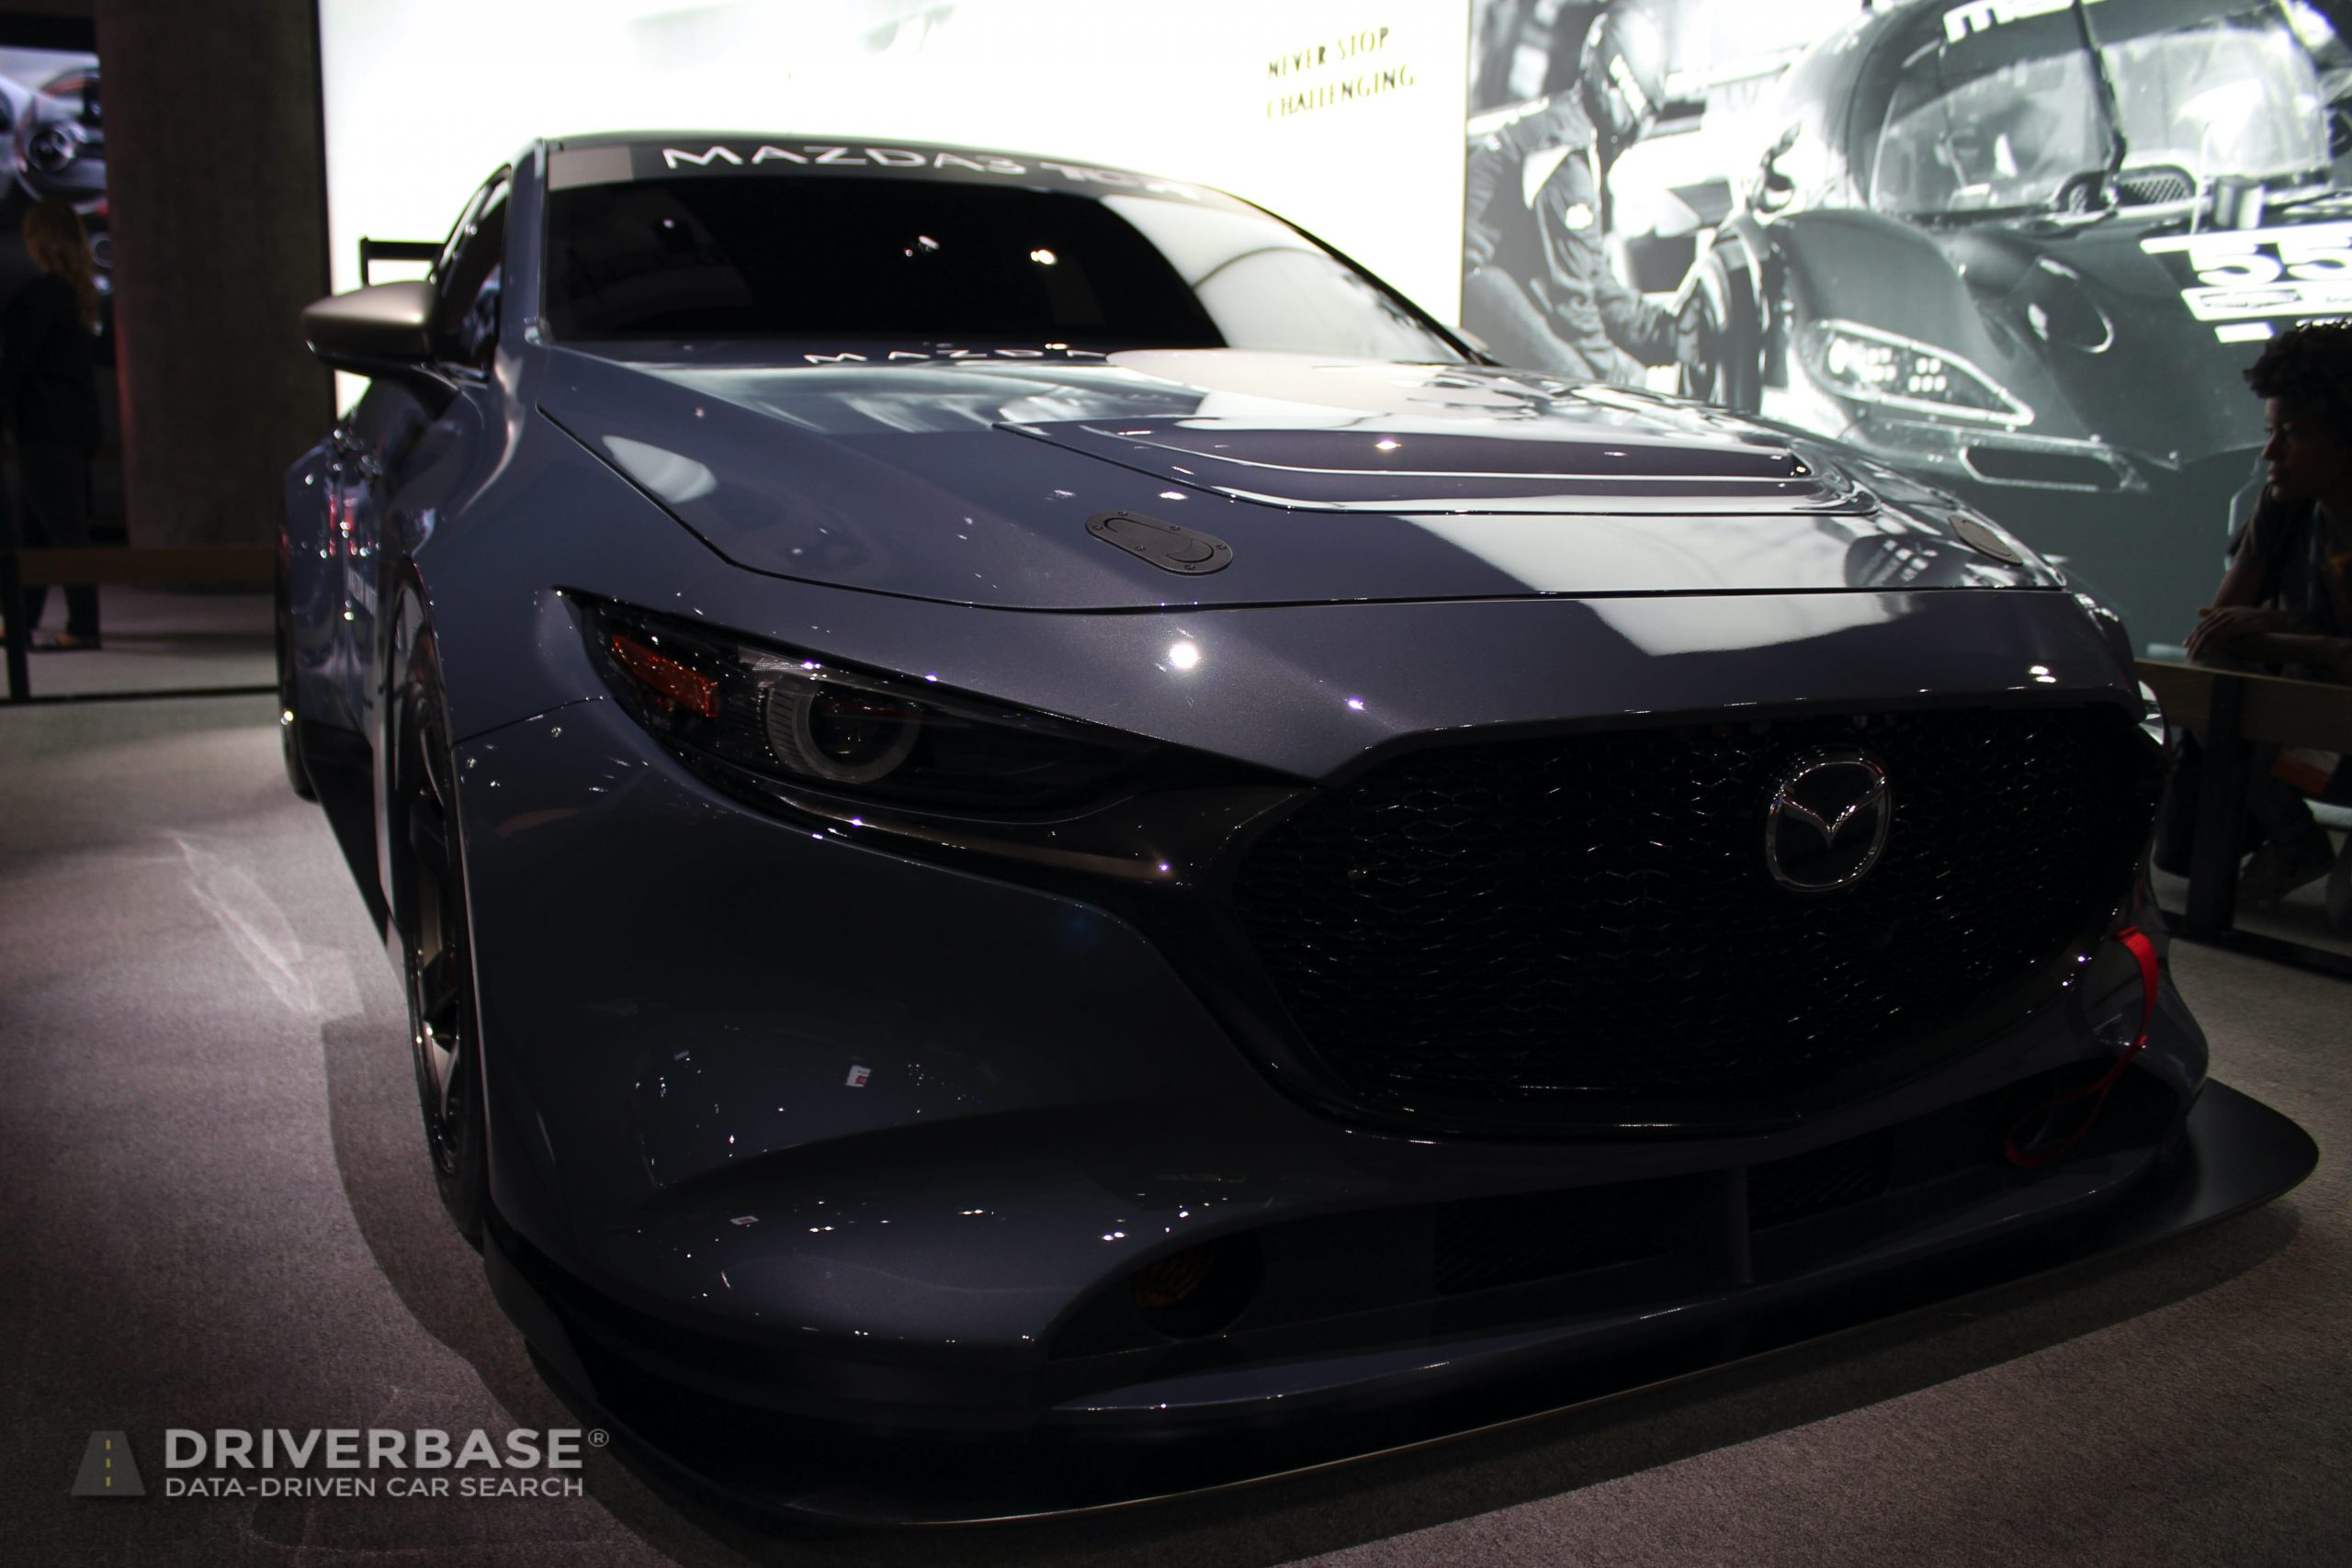 2020 Mazda3 TCR at the 2019 Los Angeles Auto Show